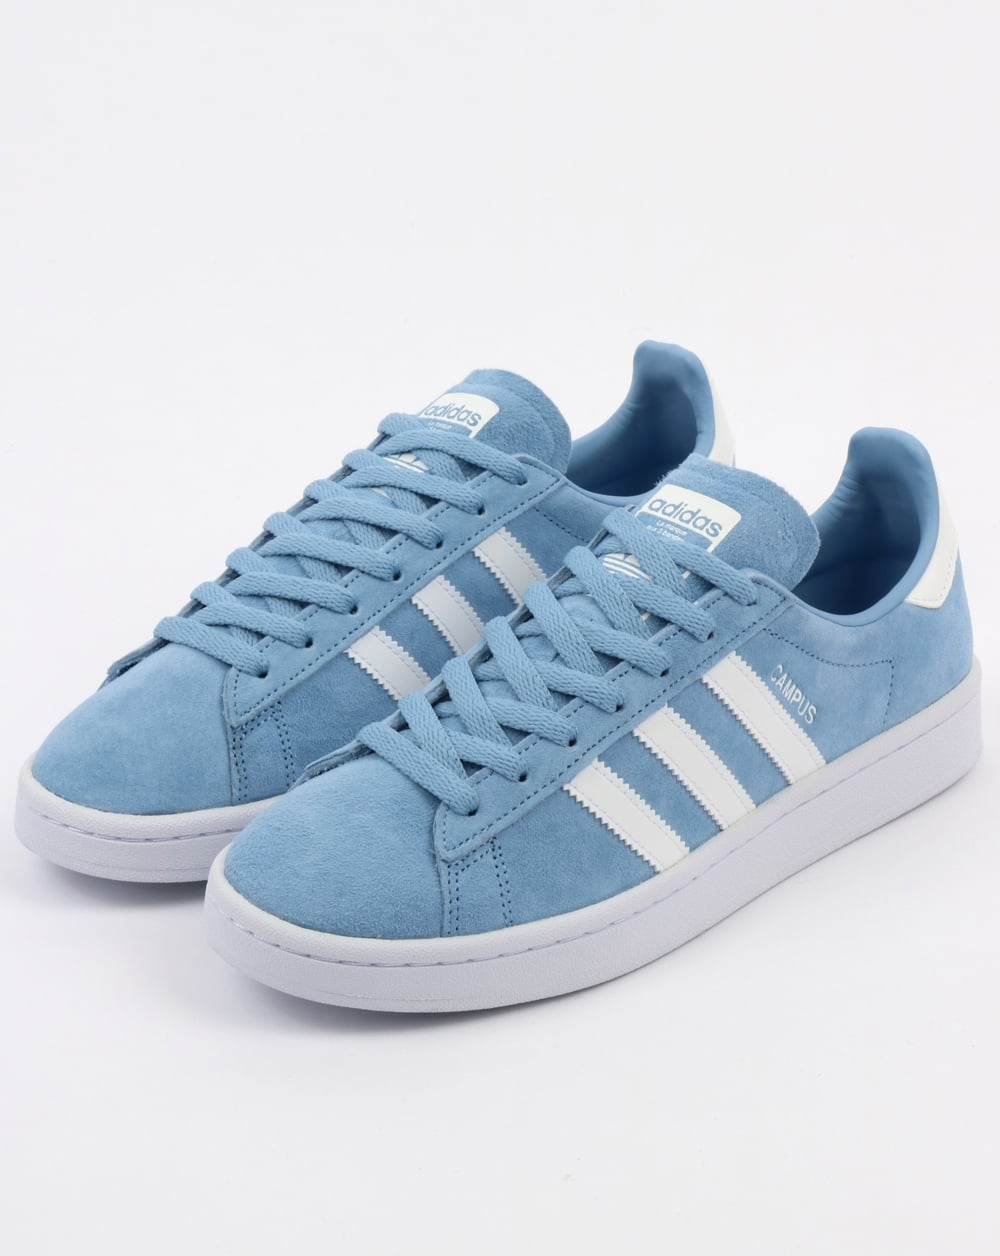 Adidas Blue Campus Shoes